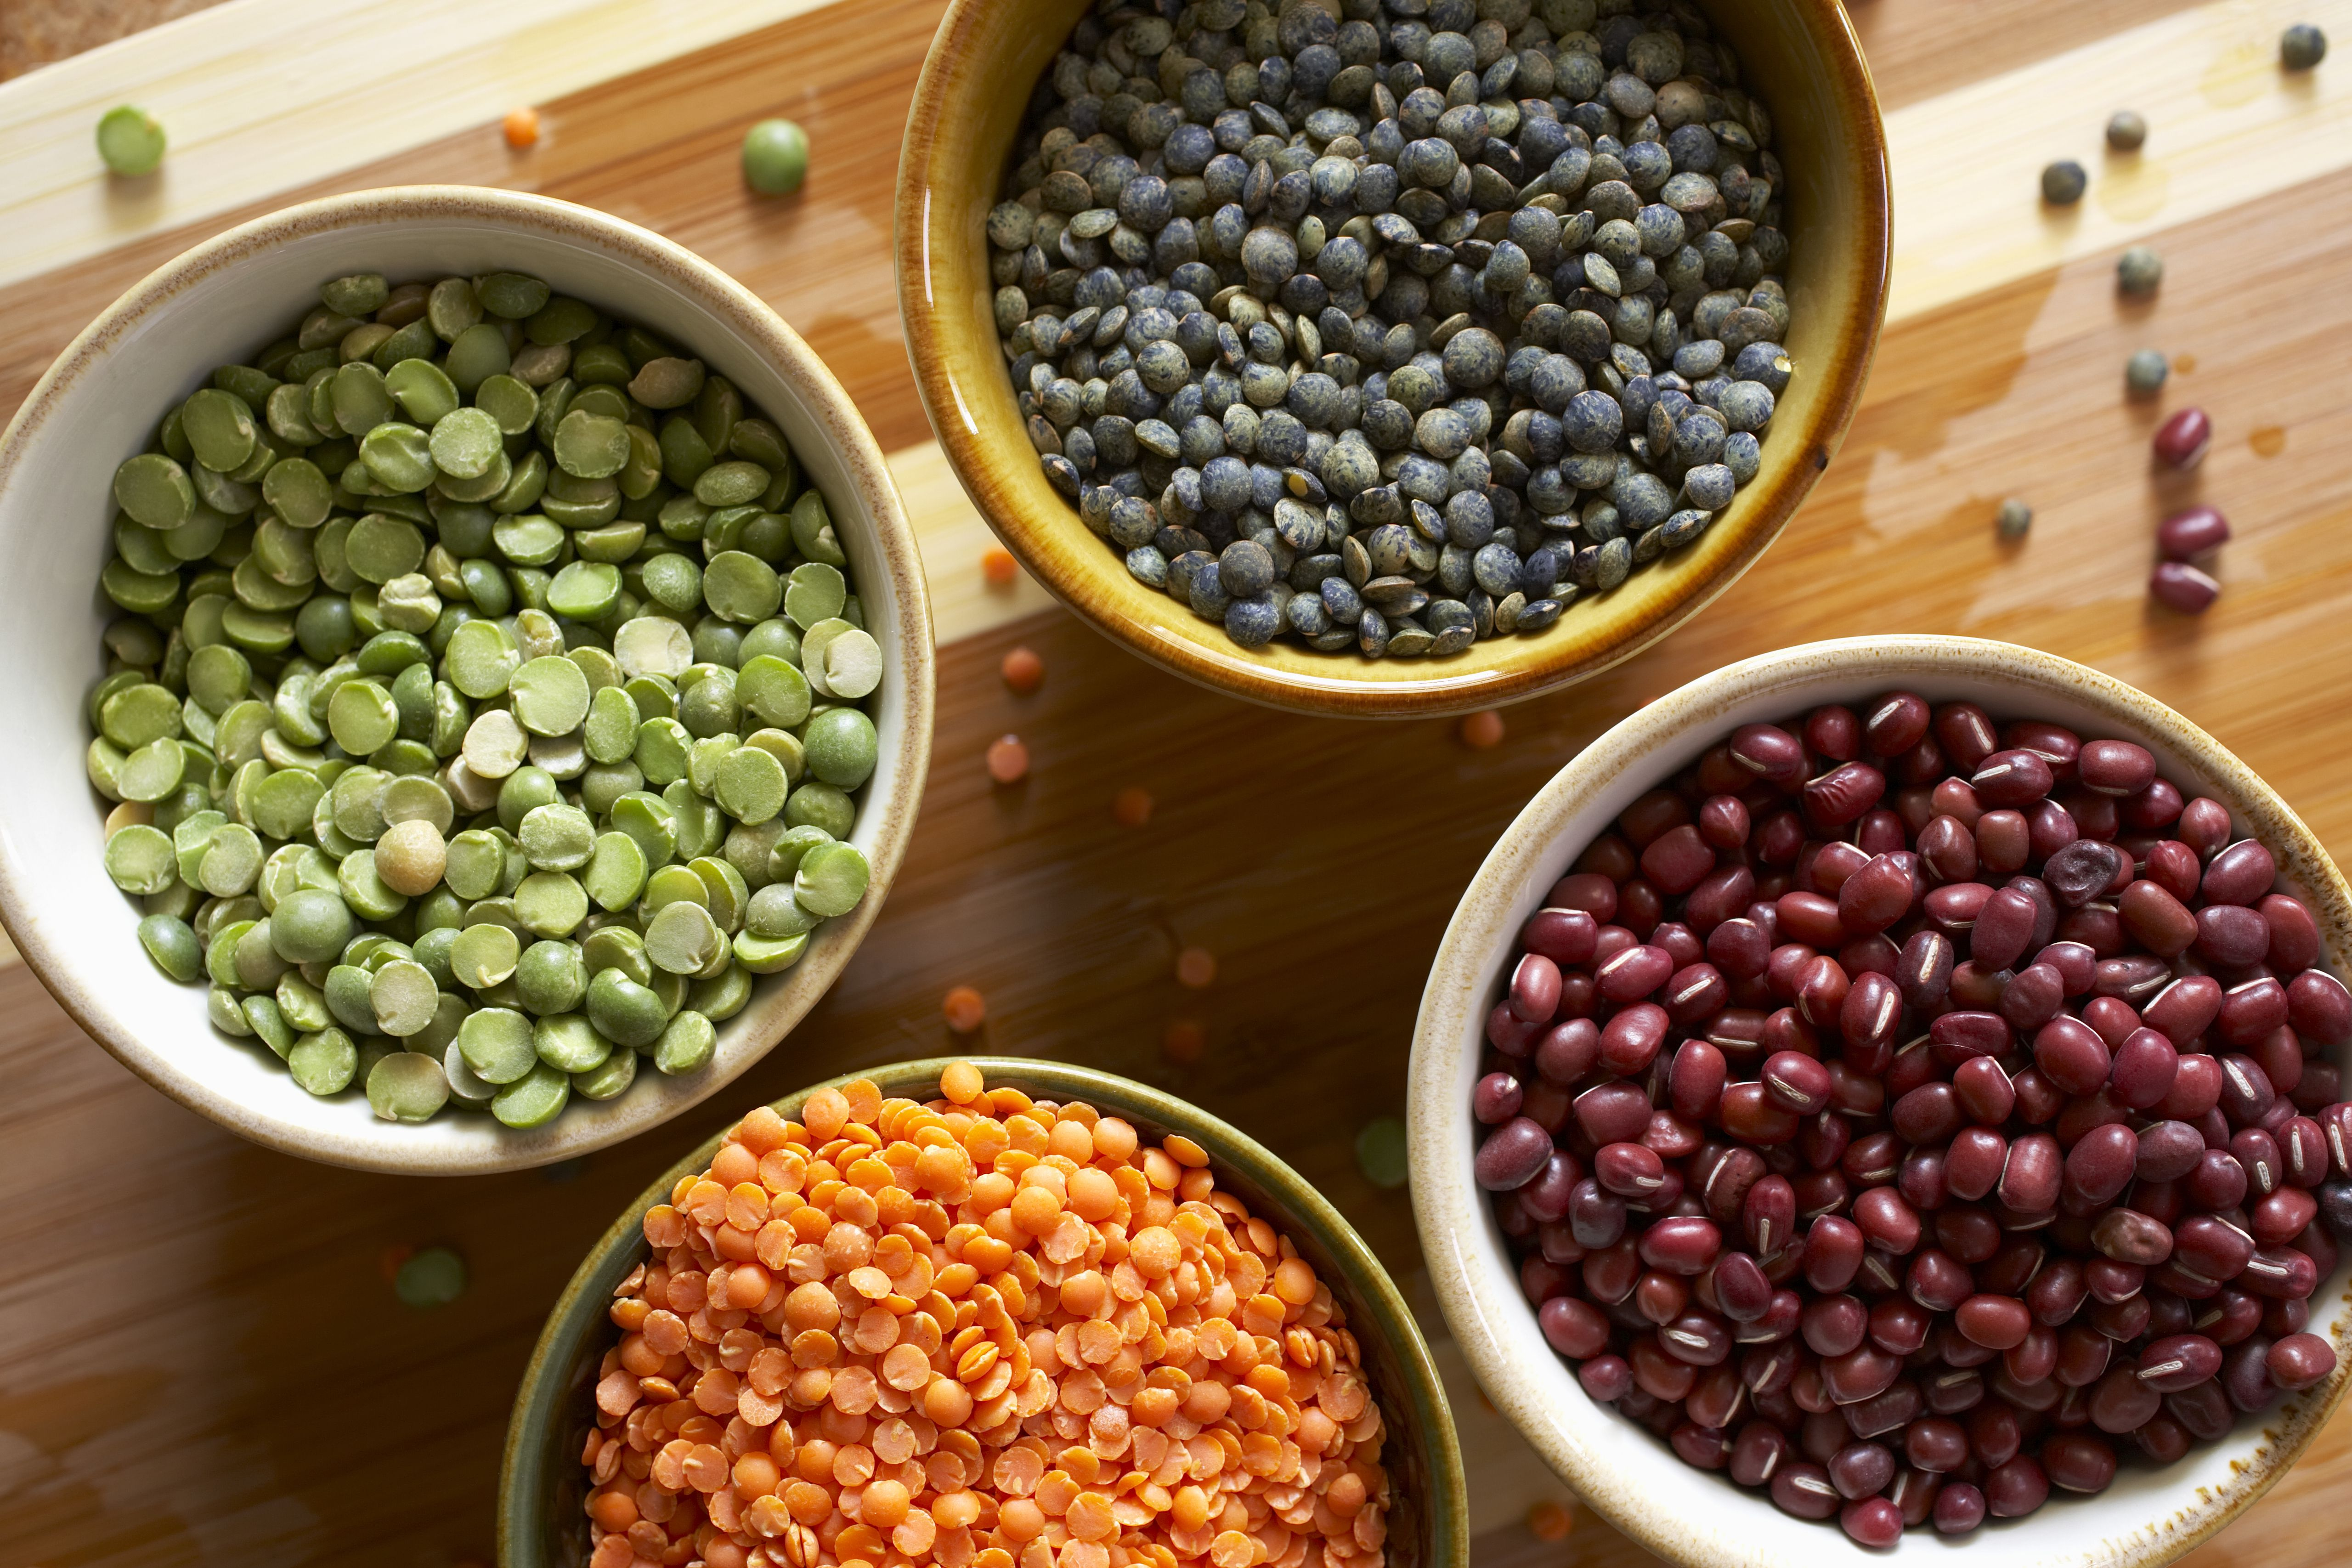 Assorted Organic Dried Lentils and Beans in Small Bowls